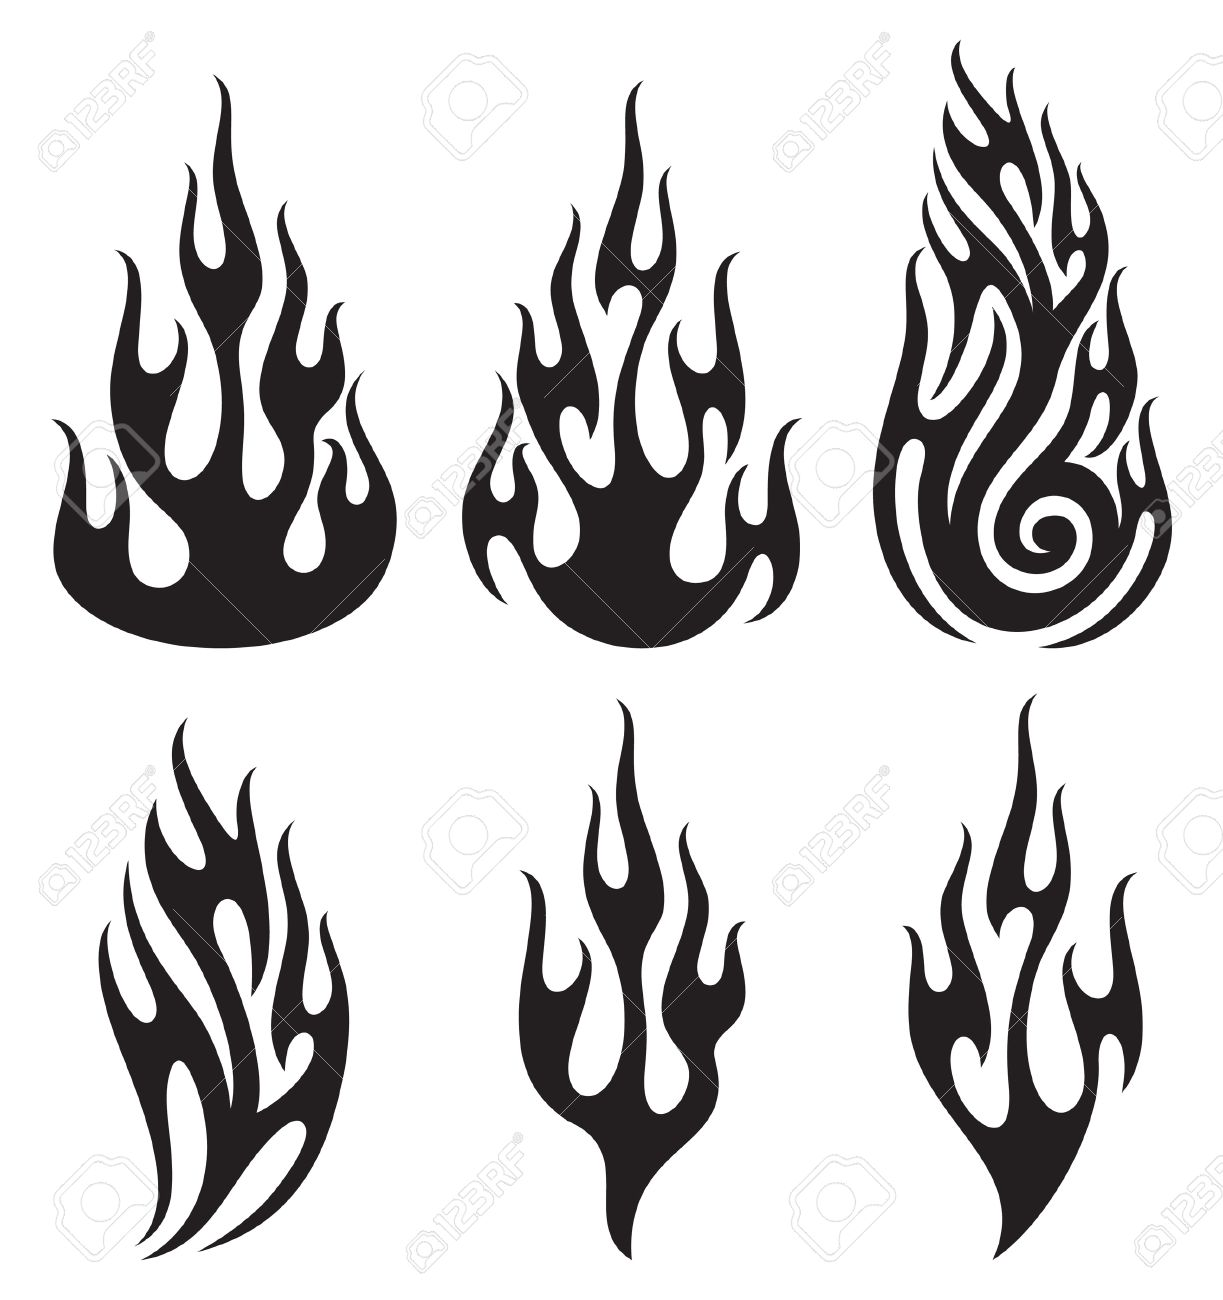 Free black and white flame clipart. Download best